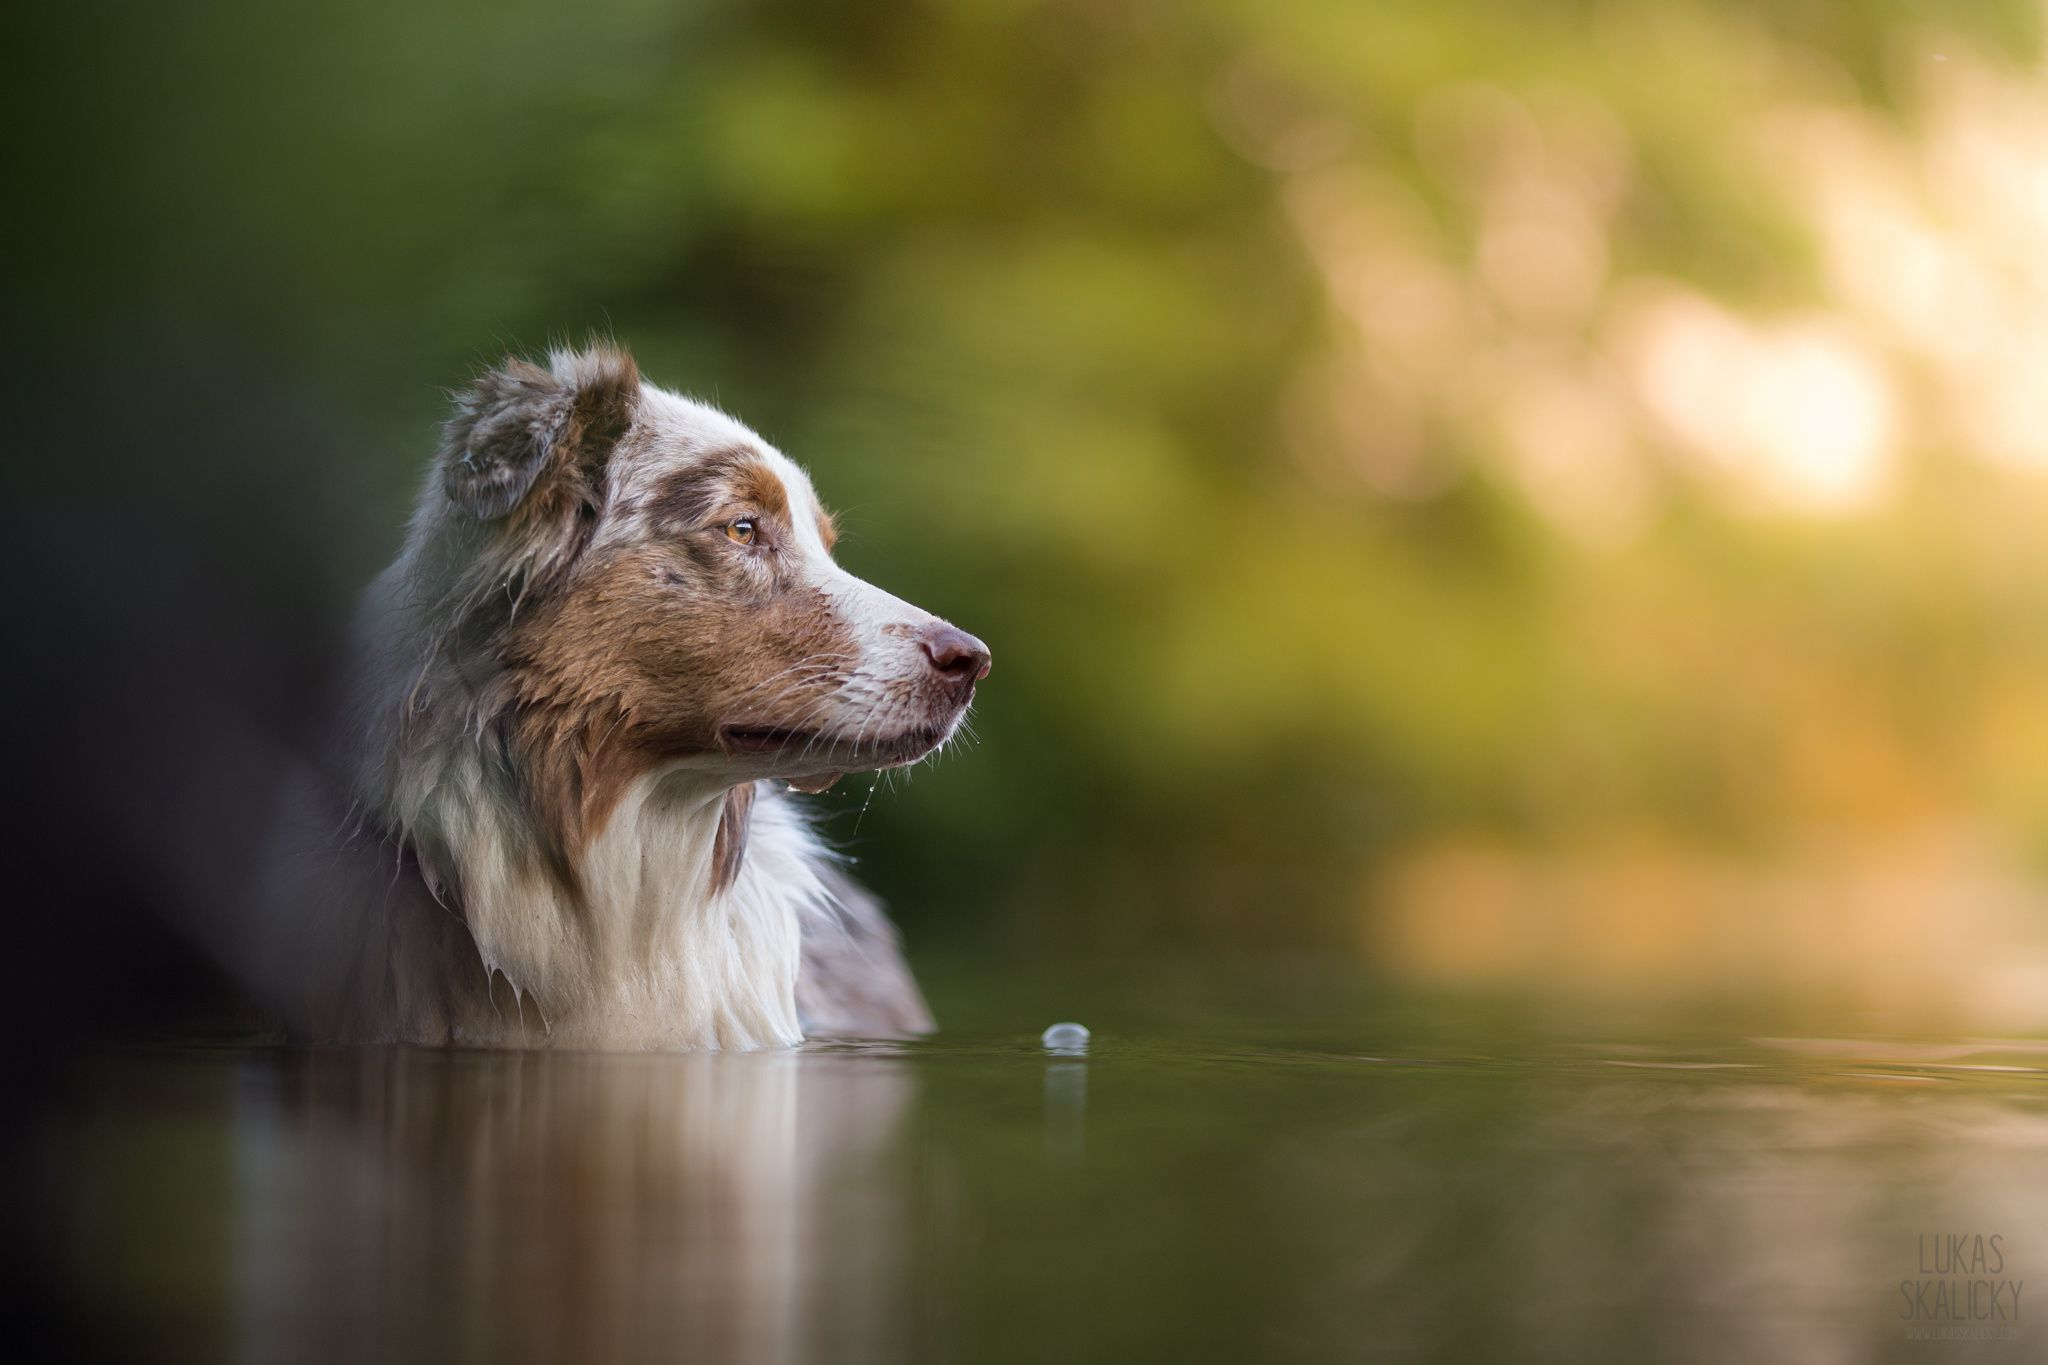 Dog Water Light By Lukas Skalicky On 500px Con Imagenes Pastor Australiano Perros Perruno